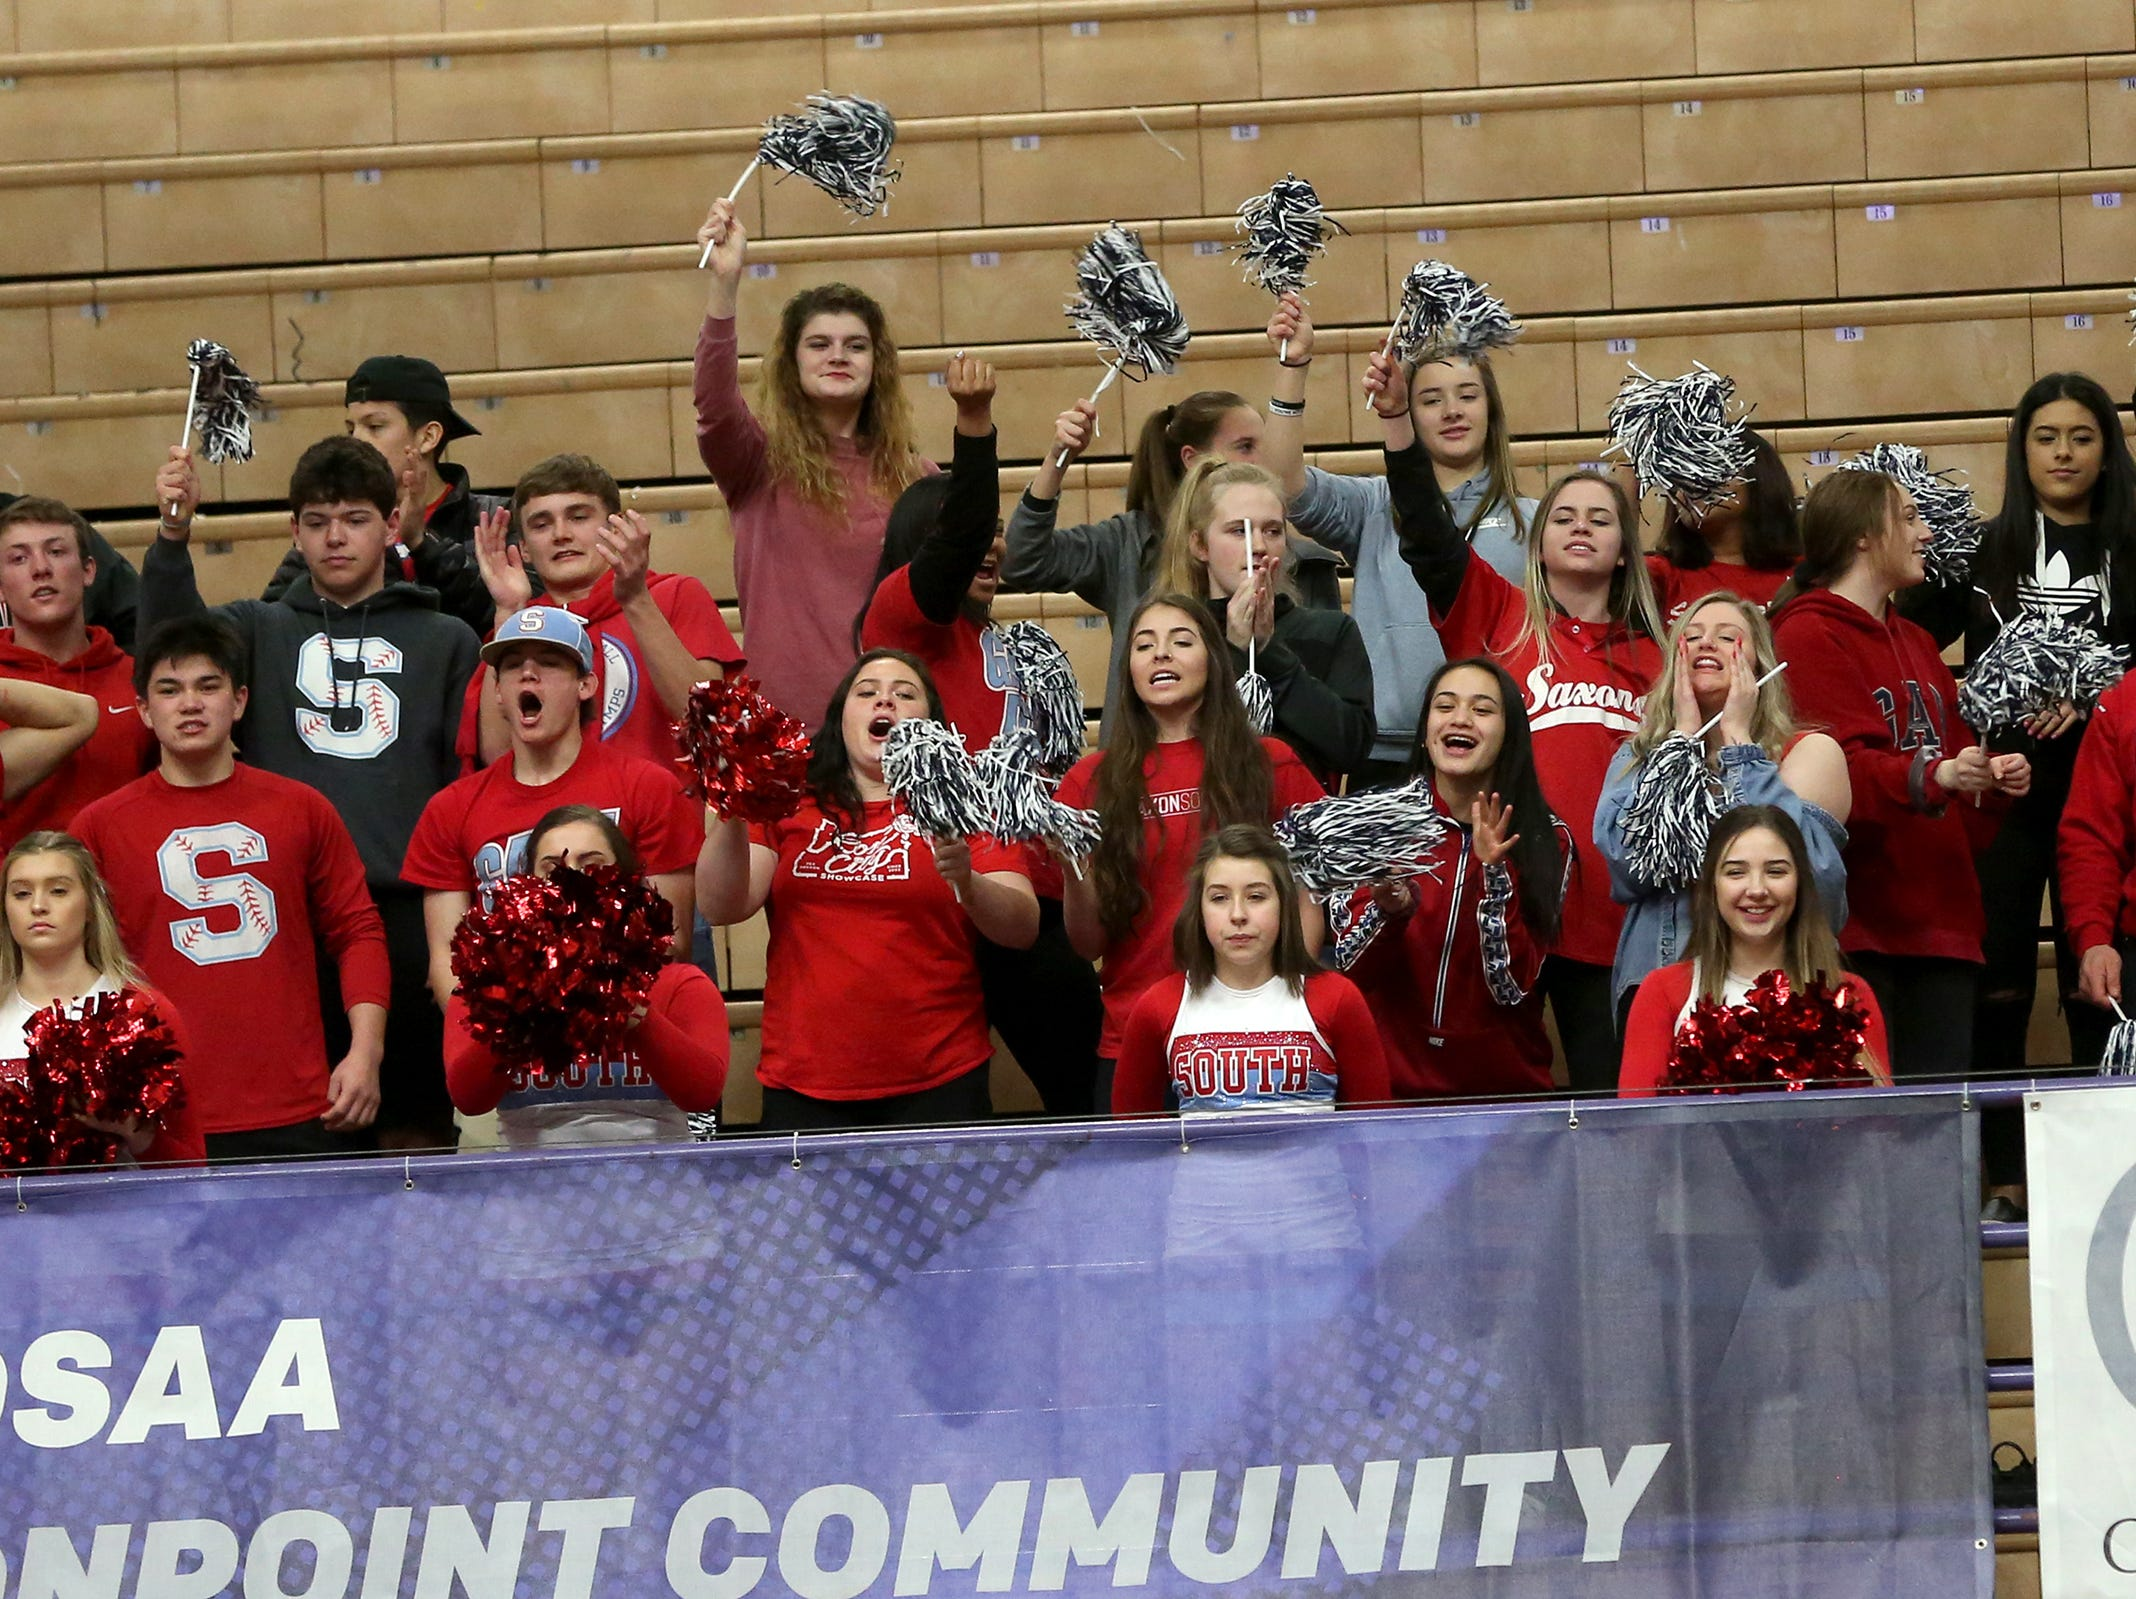 South Salem students cheer on their team during the South Salem vs. Jefferson boys basketball OSAA 6A semifinal game at Chiles Center in Portland on Friday, March 8, 2019.